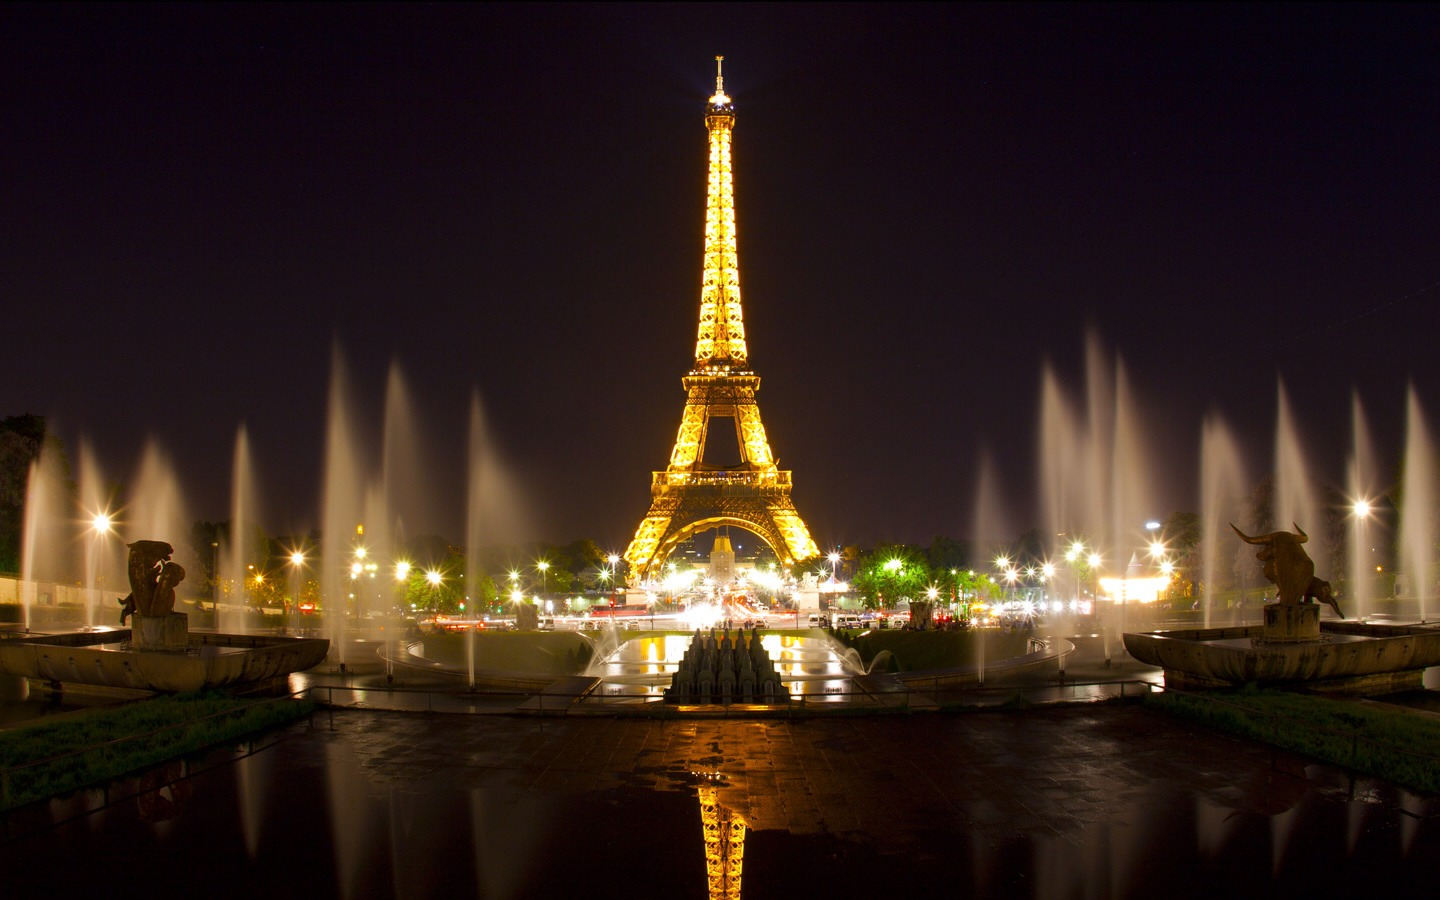 Paris: The city of romance. The perfect honeymoon destination. Despite being mostly popular for the Eiffel Tower, tourists and travel companies usually forget about some of the other attractions. These include: the Louvre Gallery, the castle of Notre Dame, and just generally the streets themselves.